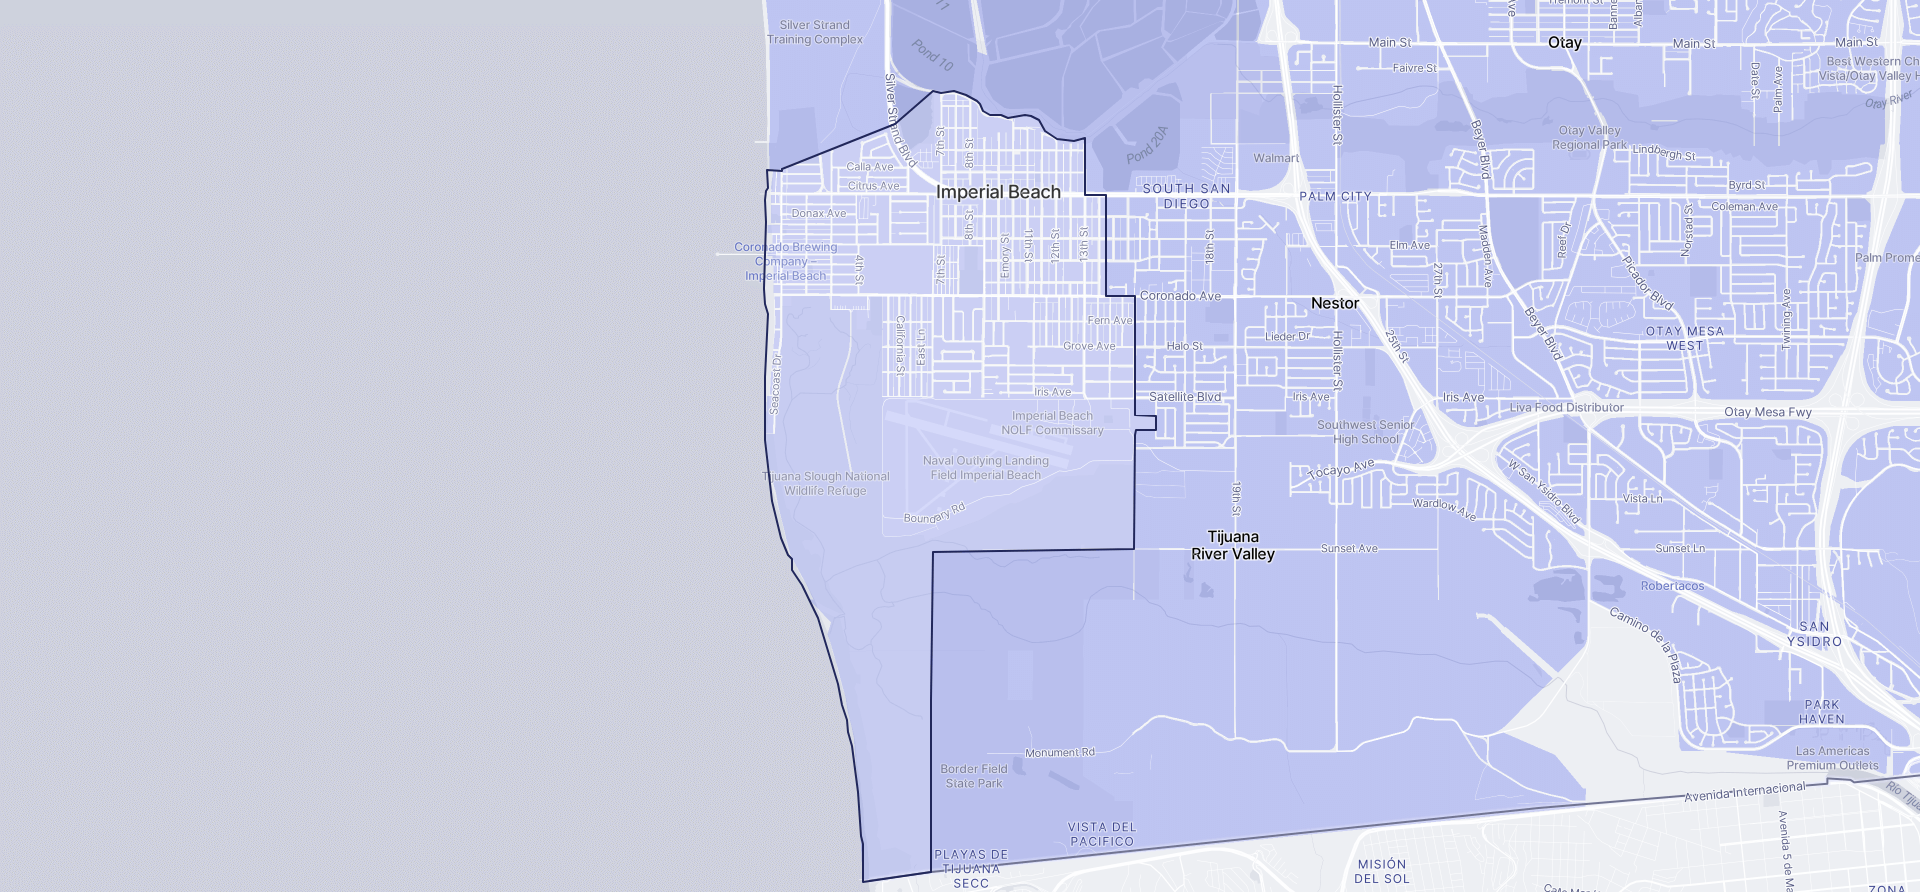 Image of Imperial Beach boundaries on a map.